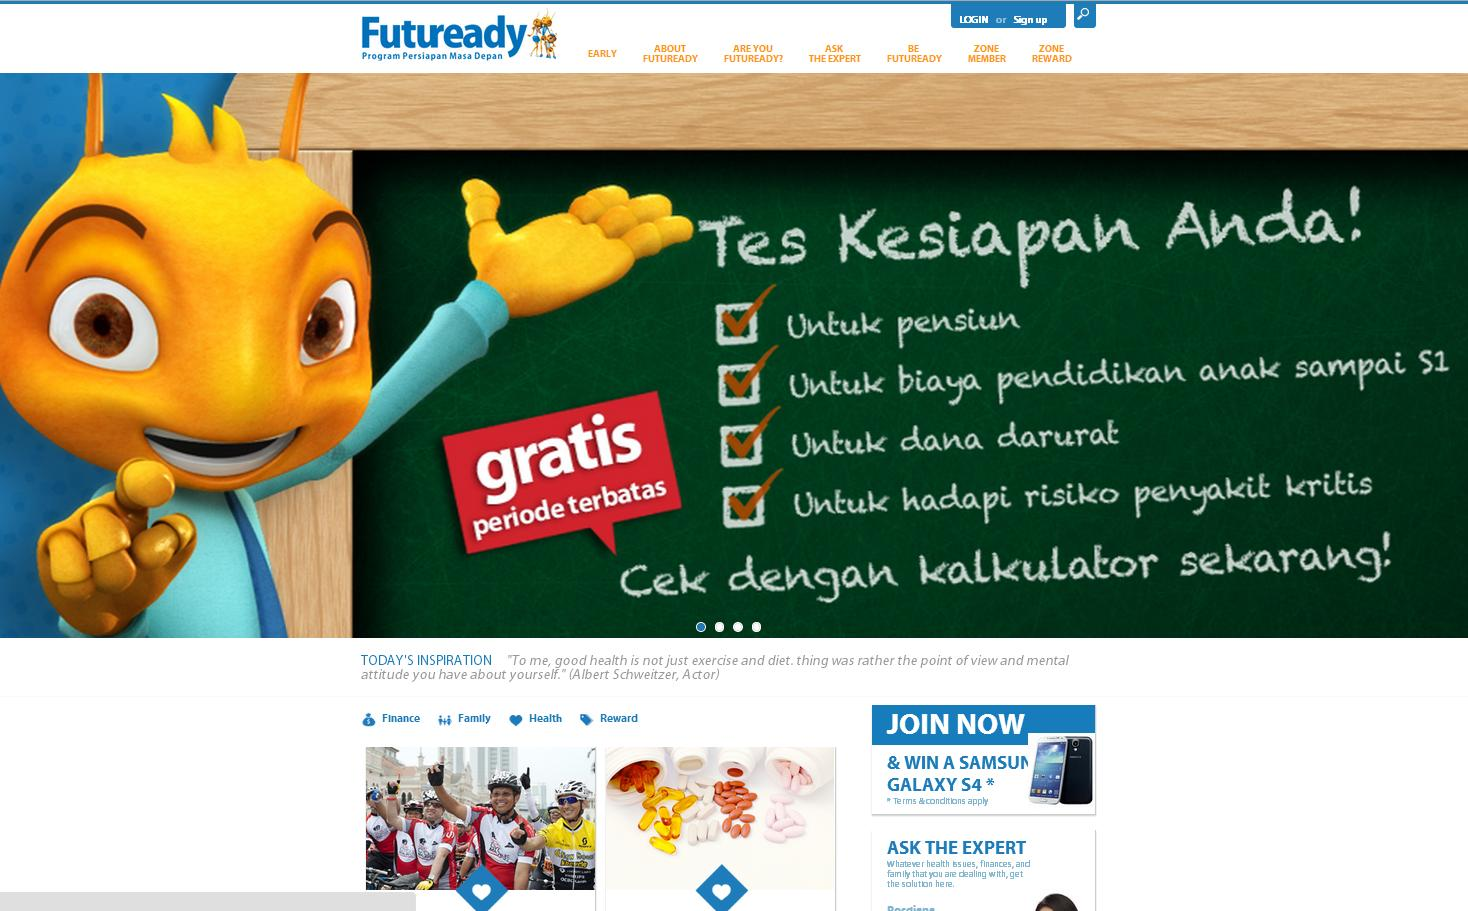 FUTUREADY FIRST OF ITS KIND Health, finance & family loyalty program Engagement tools: Finance Calculators, Health Assessment Tools Rich Content produced by experts in health, finance and family